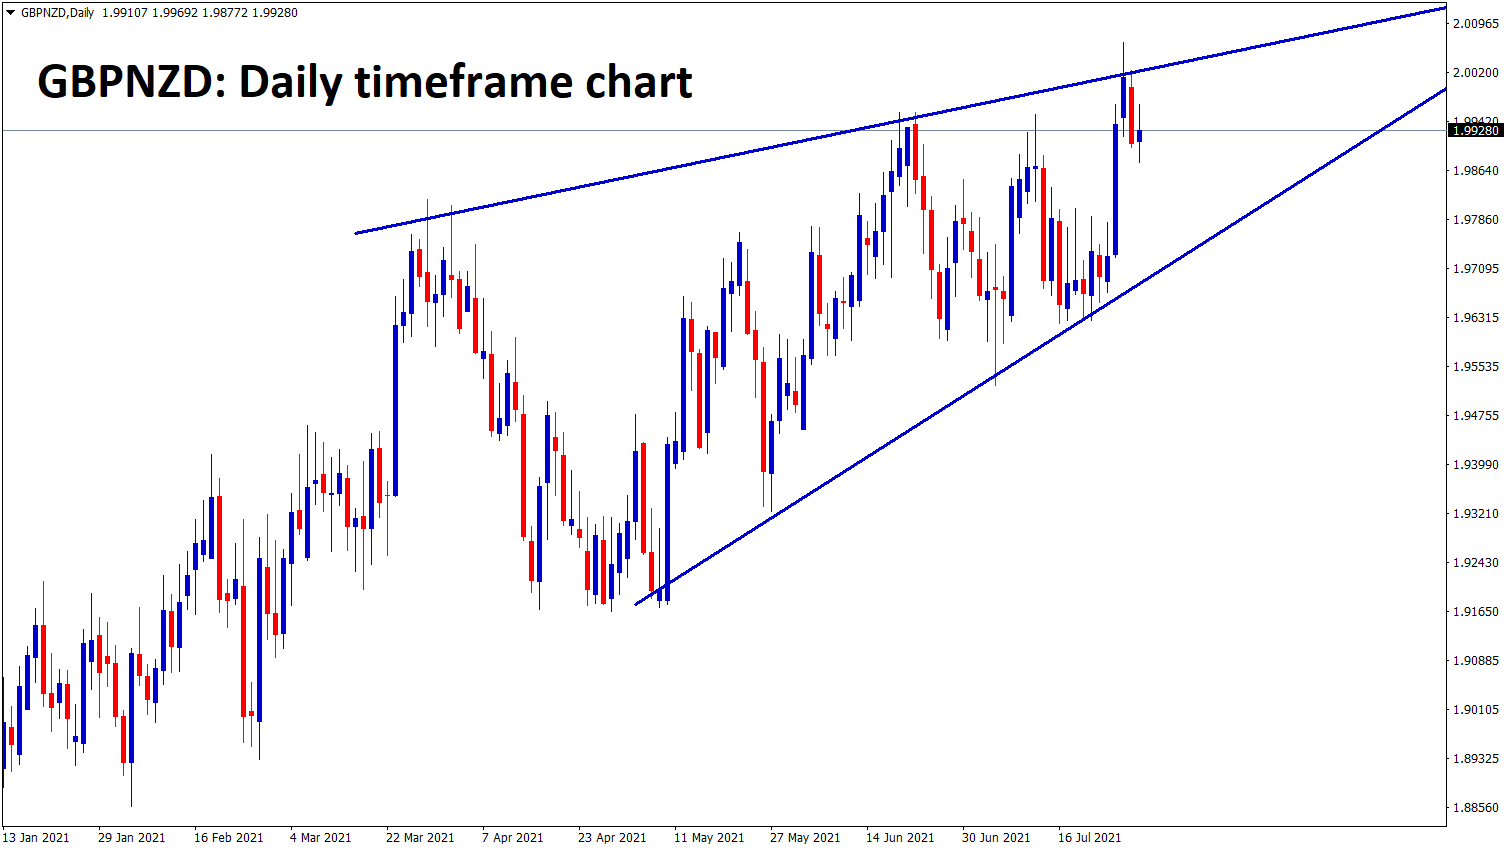 GBPNZD has formed a rising wedge pattern in the d1 timeframe